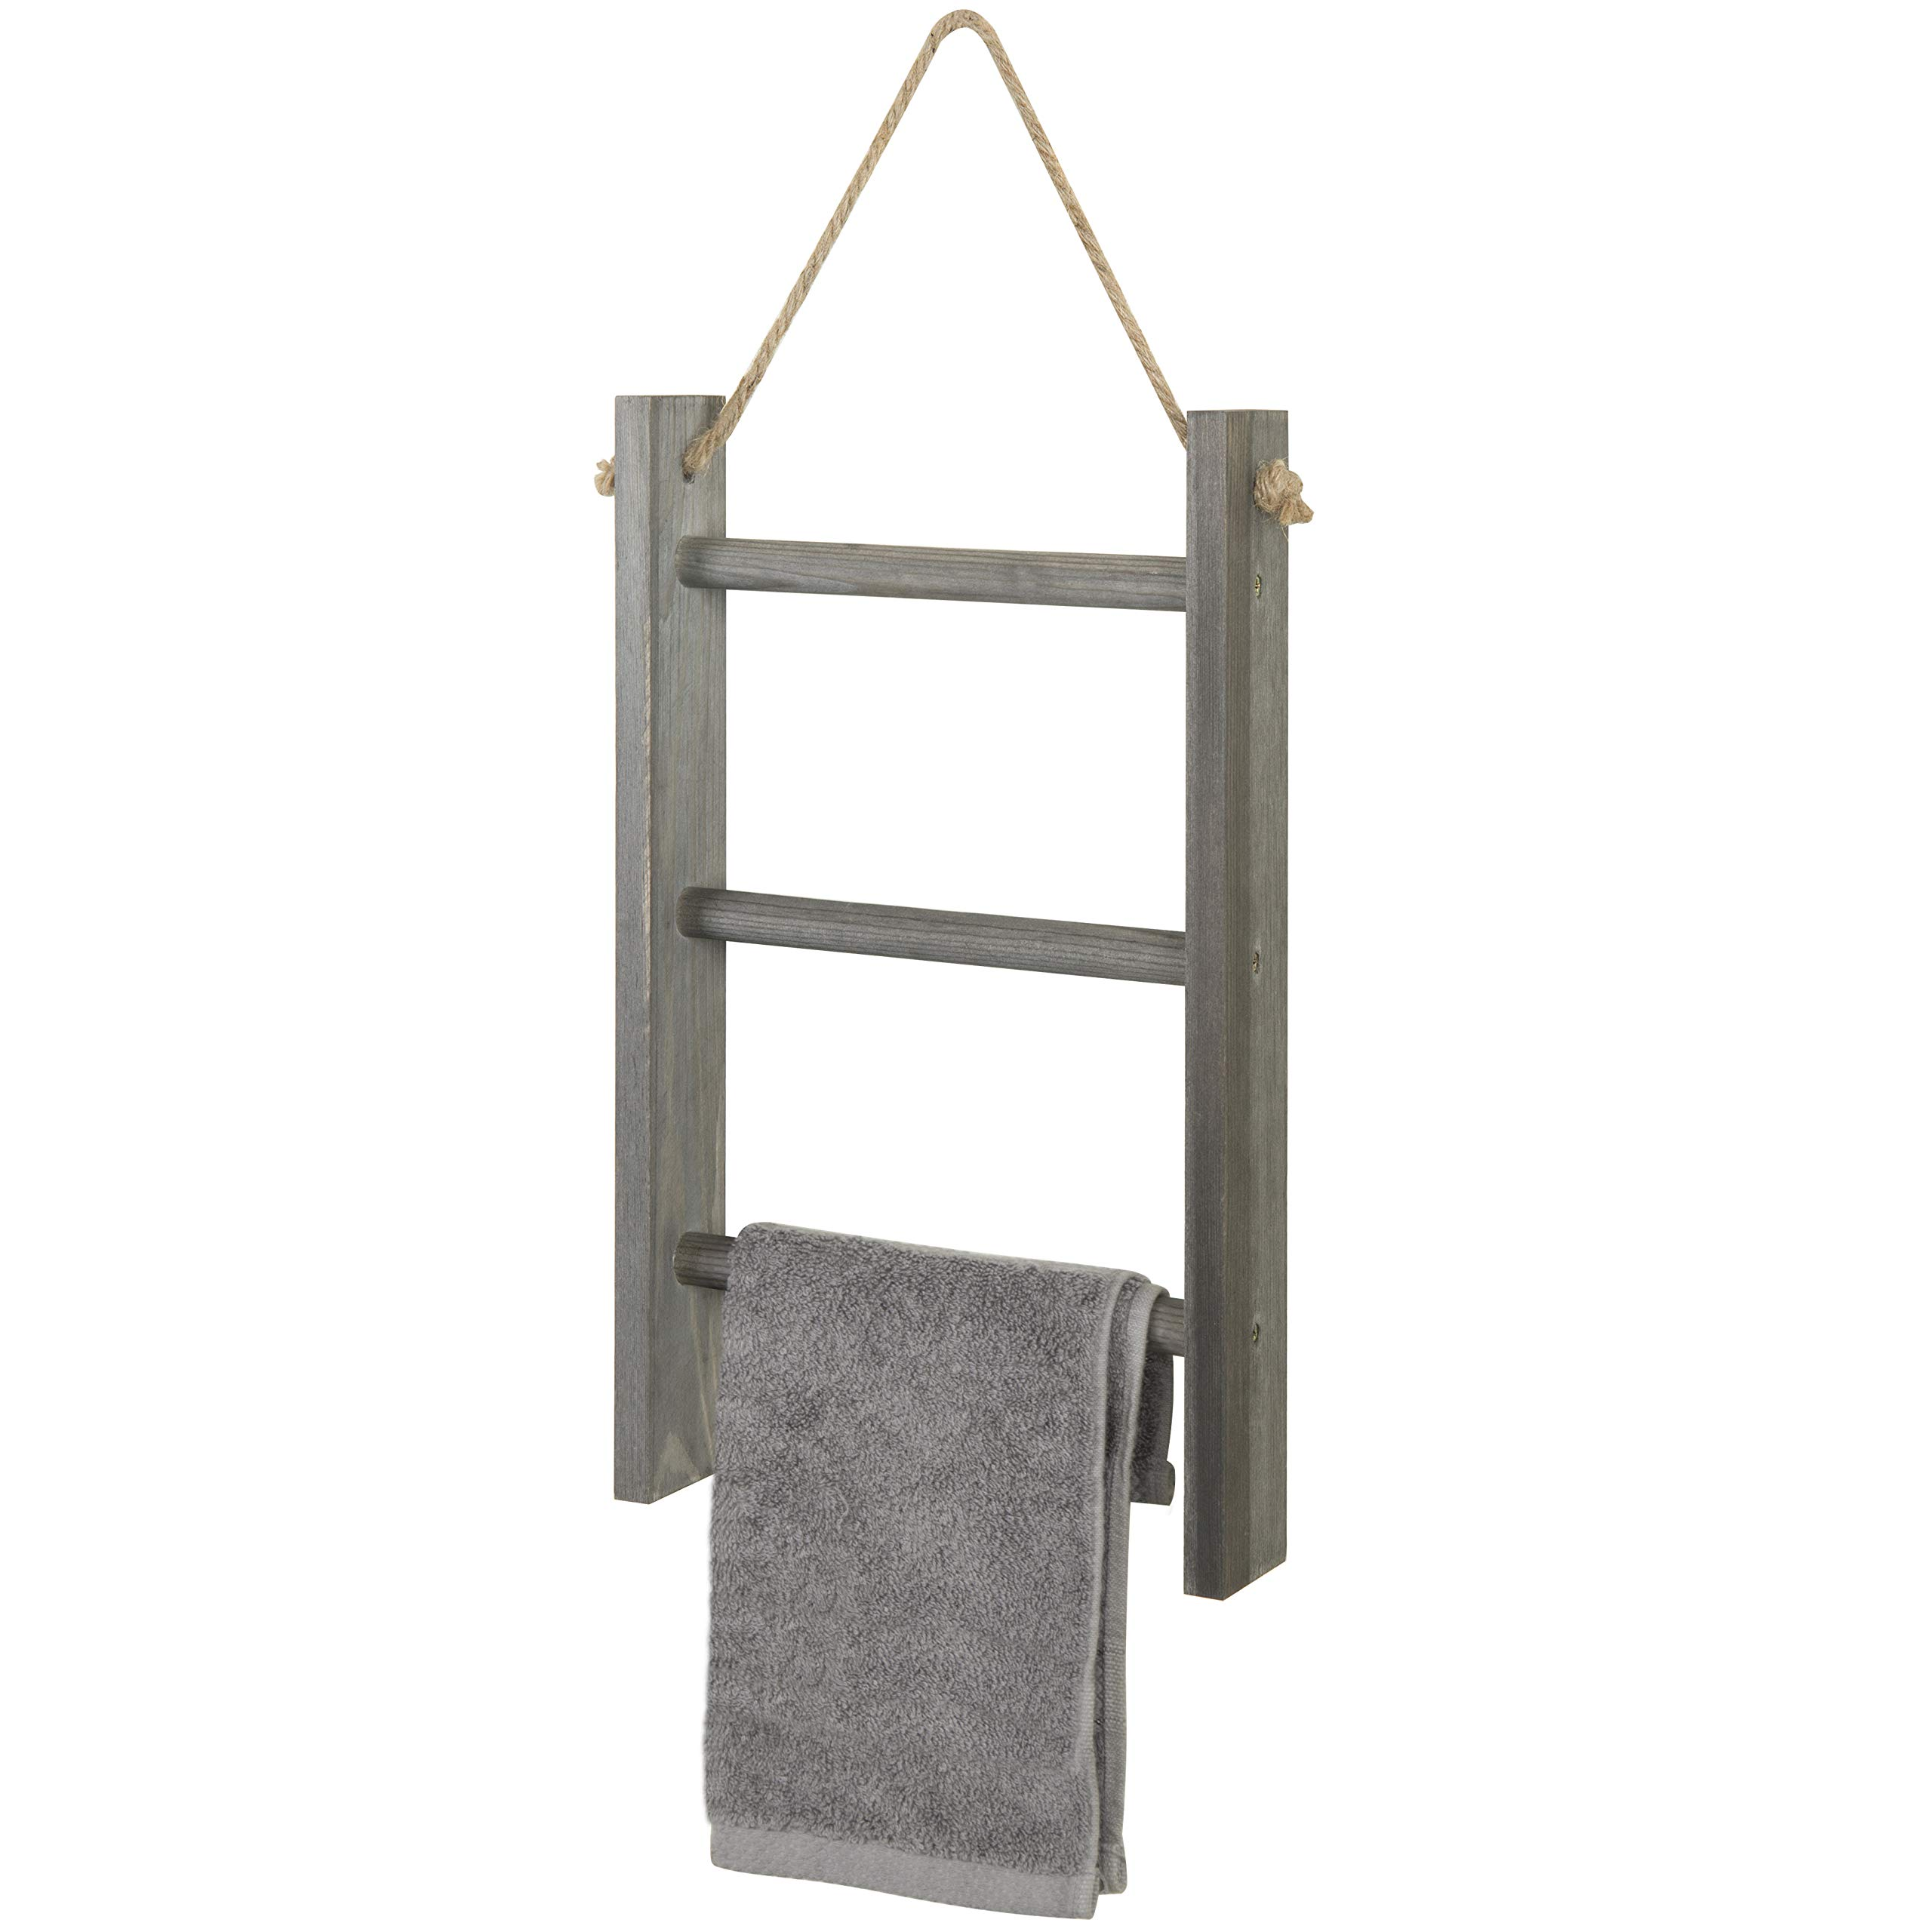 MyGift 3-Tier Rustic Wood Wall-Hanging Towel Ladder with Rope, Gray by MyGift